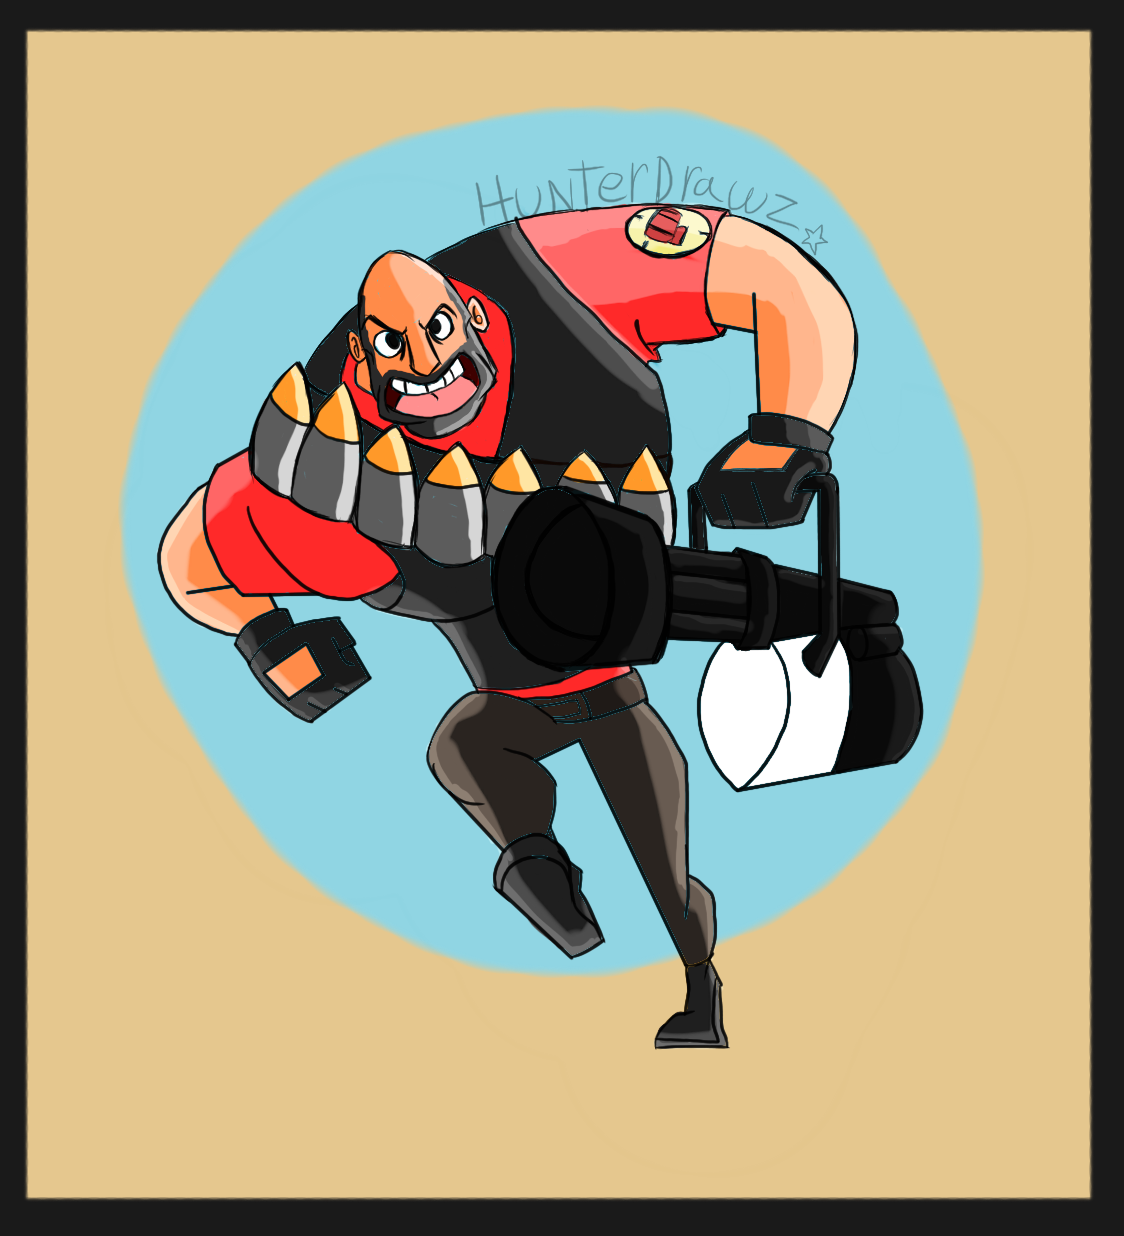 Heavy team fortress 2